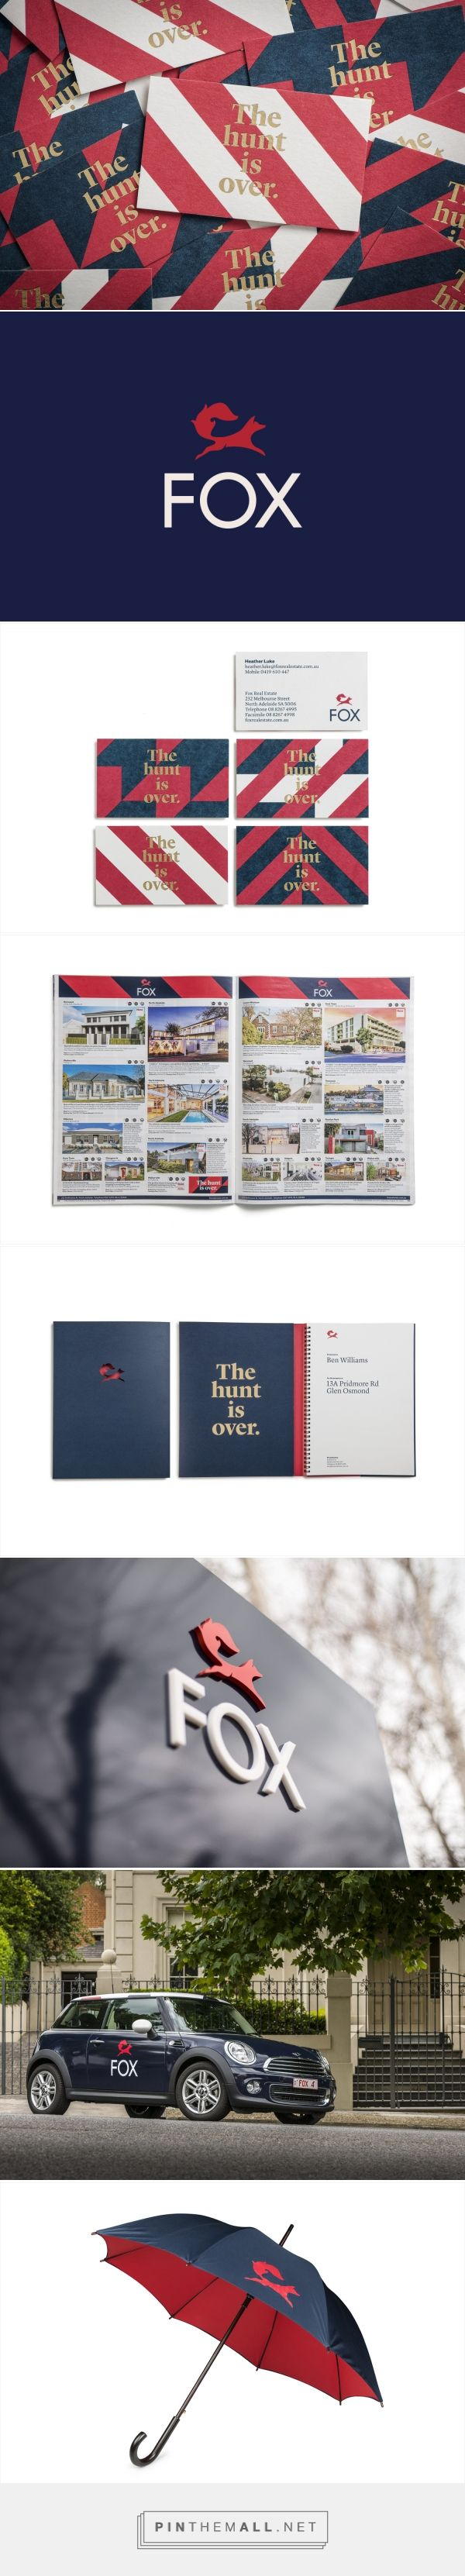 New Brand Identity for Fox Real Estate by Parallax